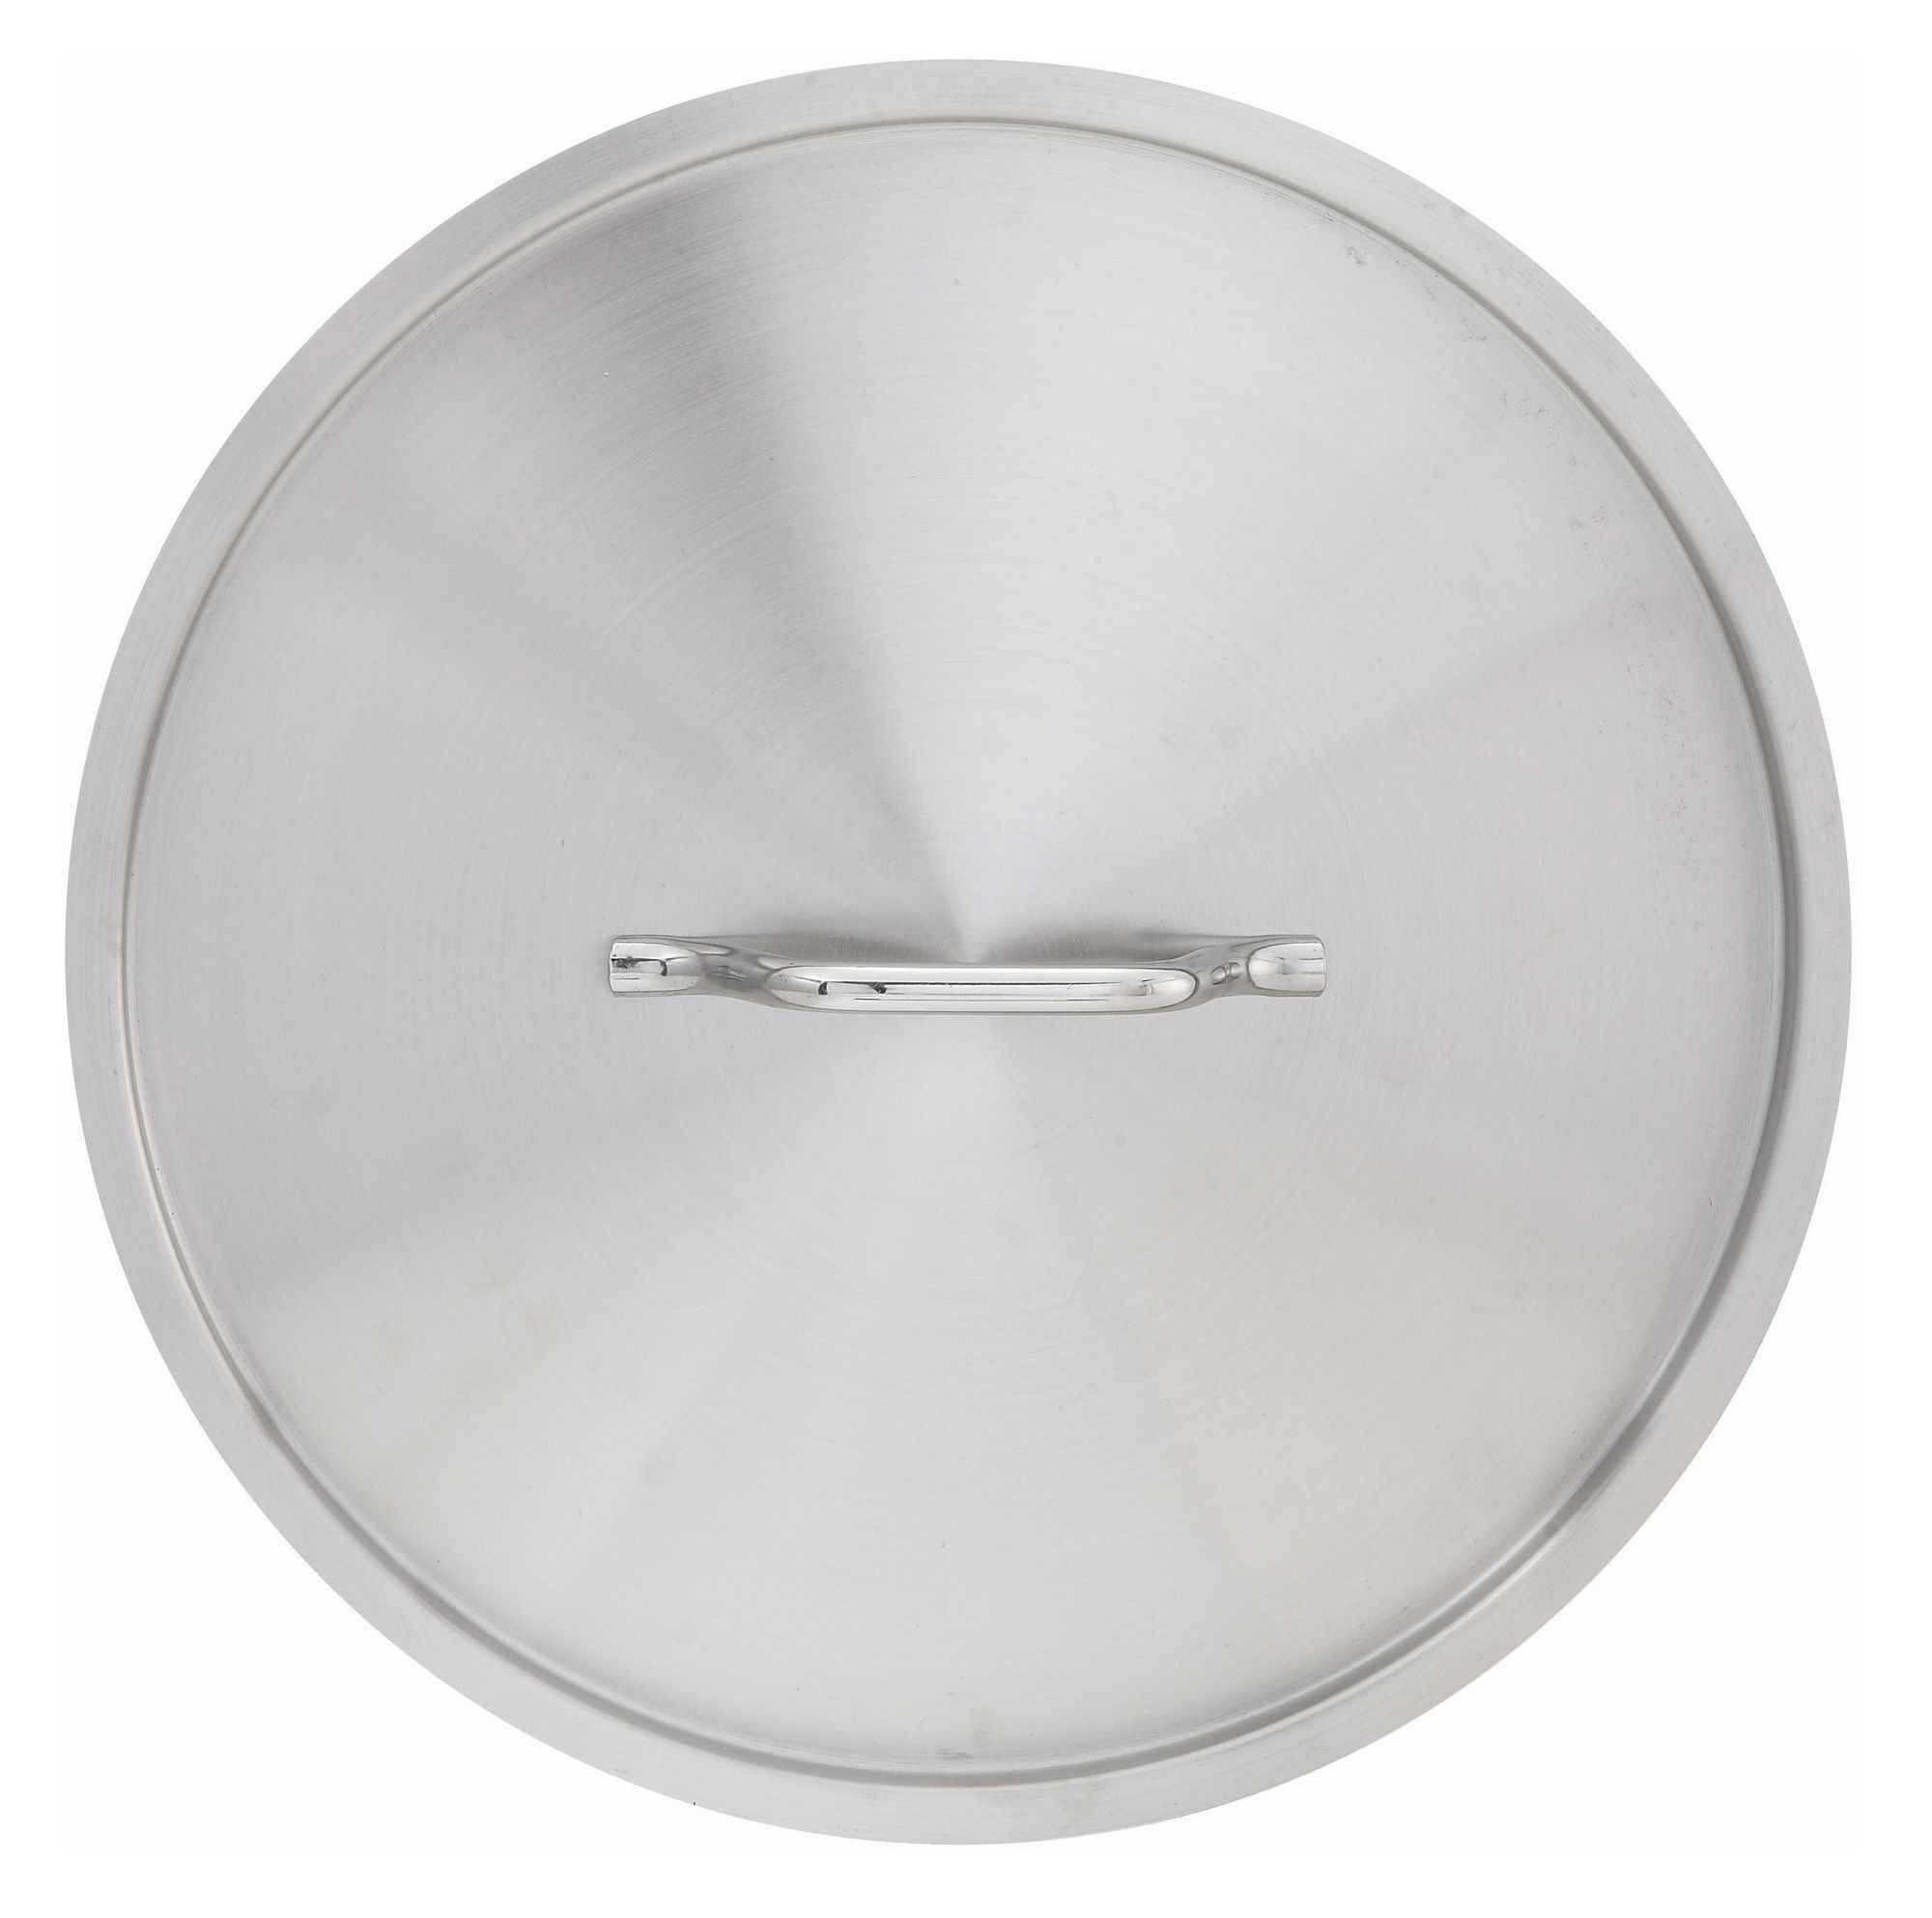 Stainless Steel Fry Pan Cover For SSFP-8 SSFP-8NS